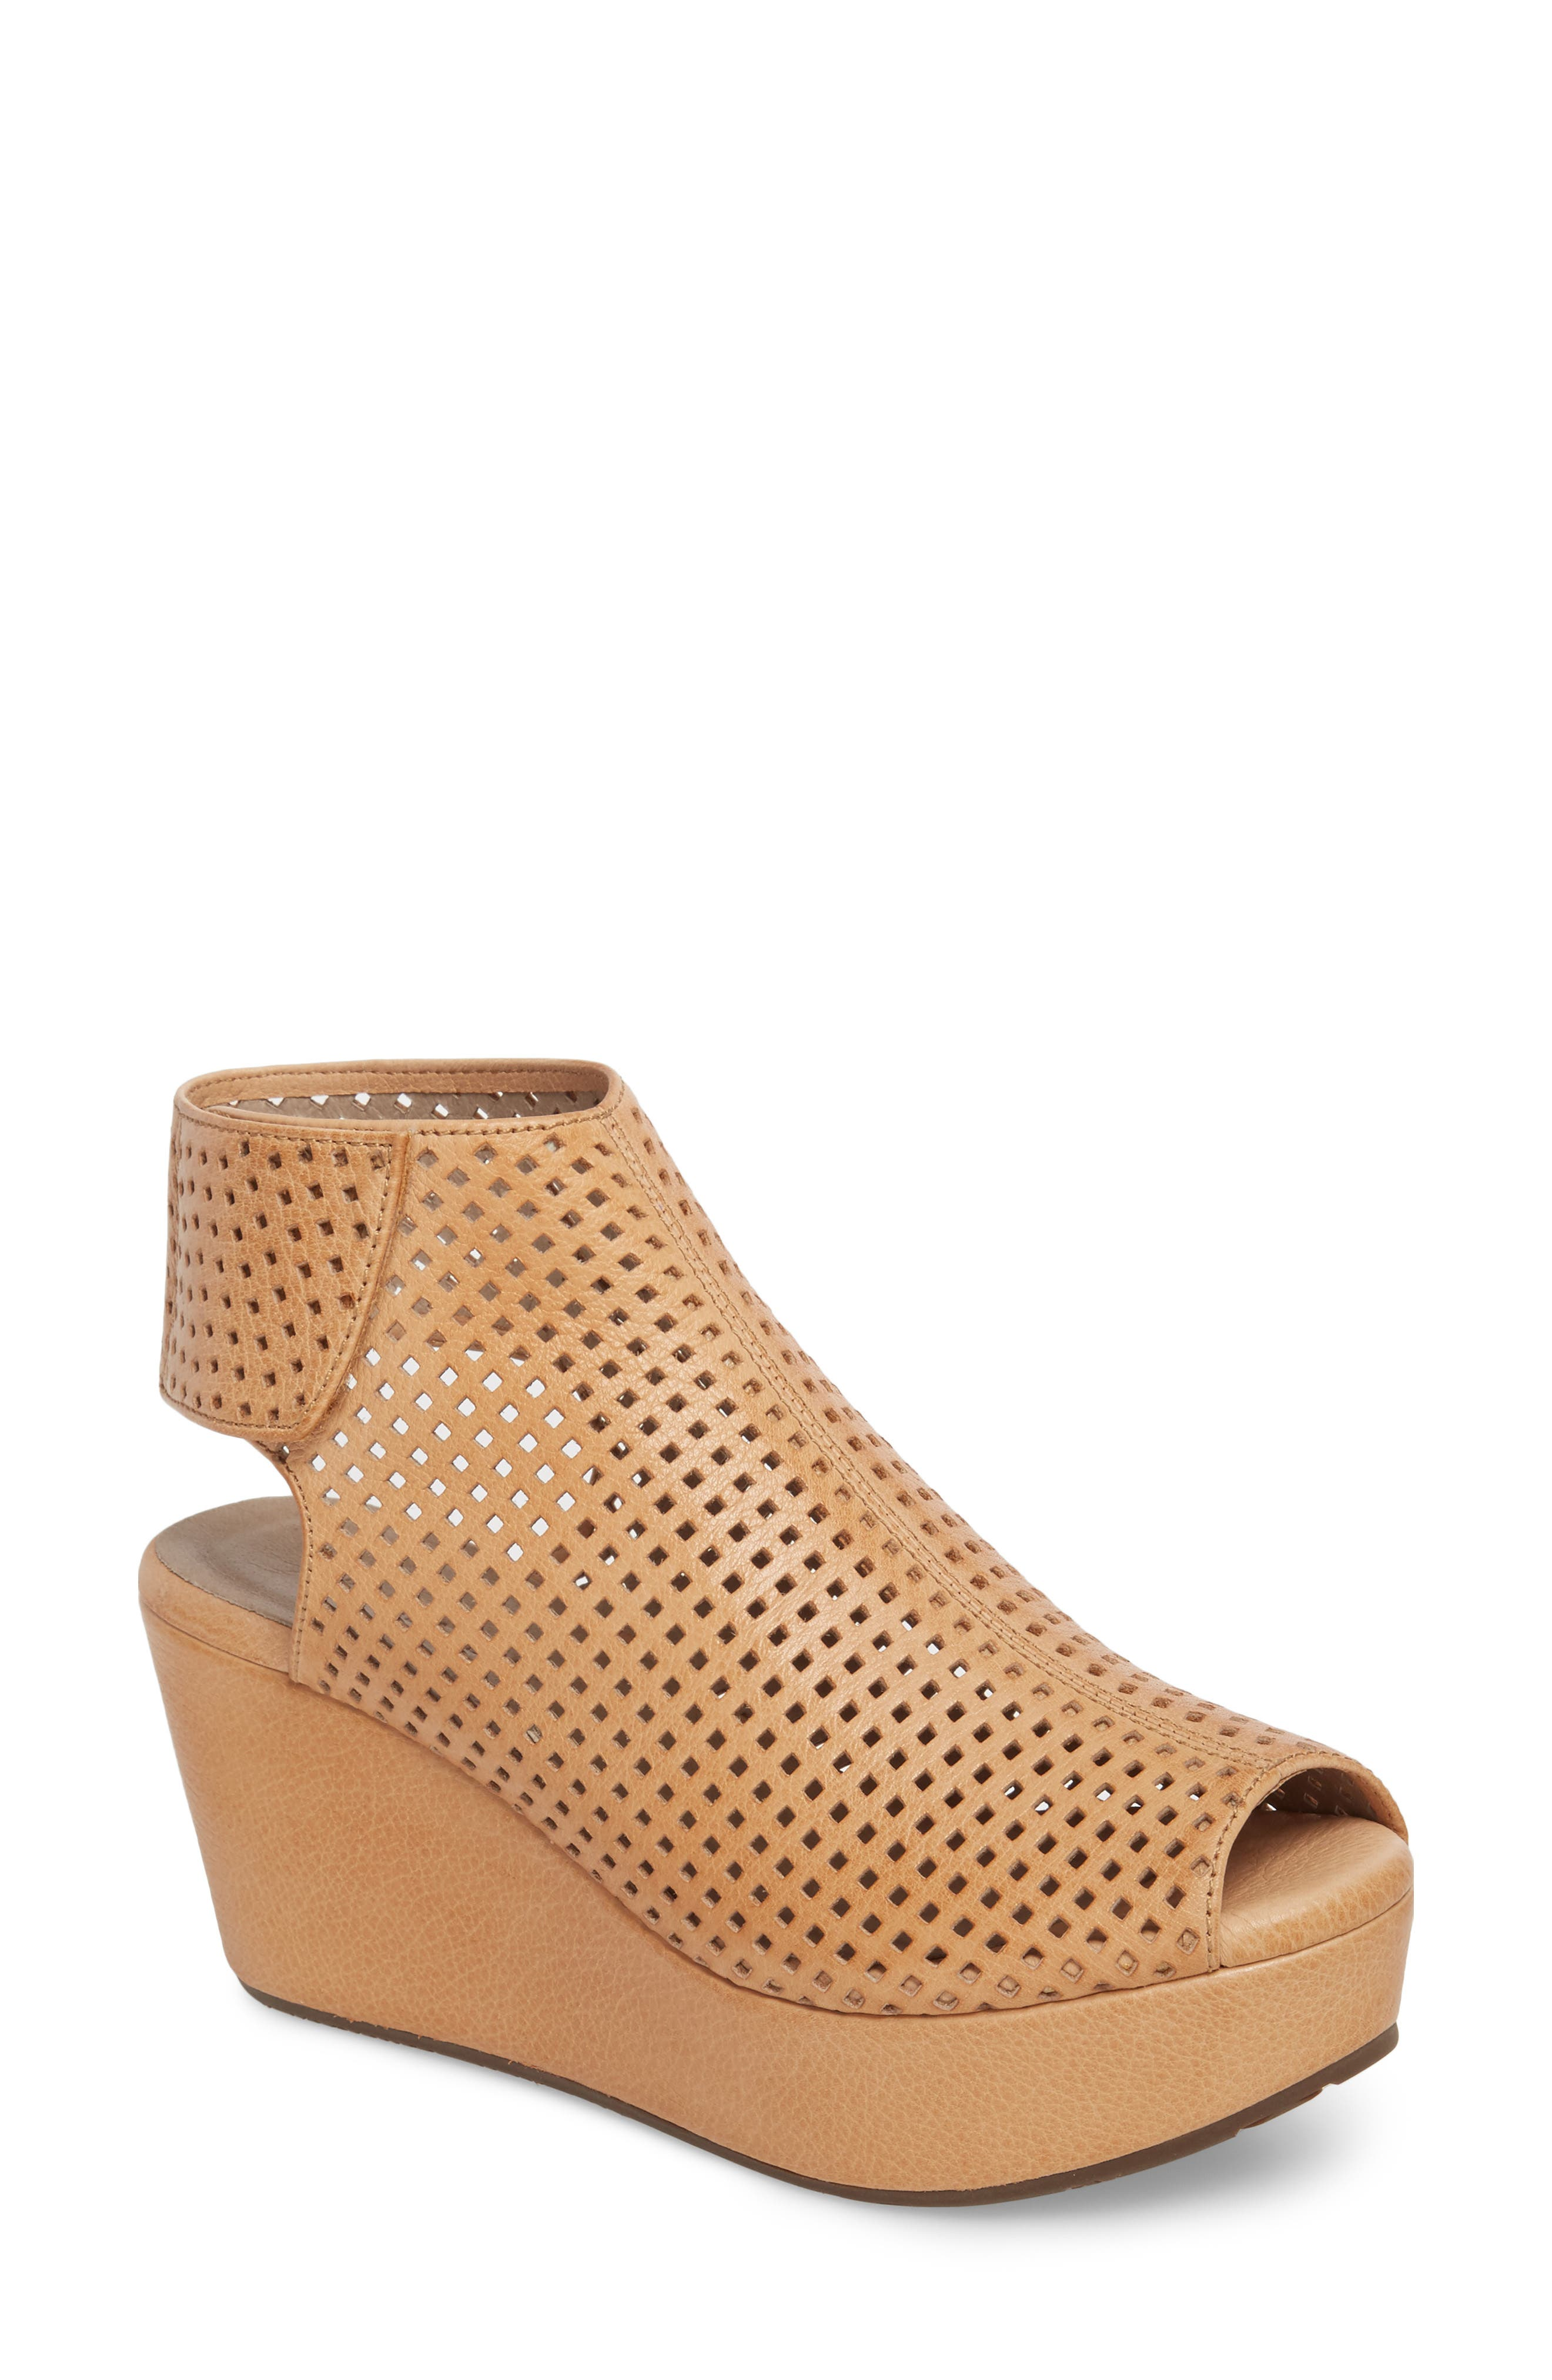 Wing Perforated Platform Wedge,                             Main thumbnail 1, color,                             200